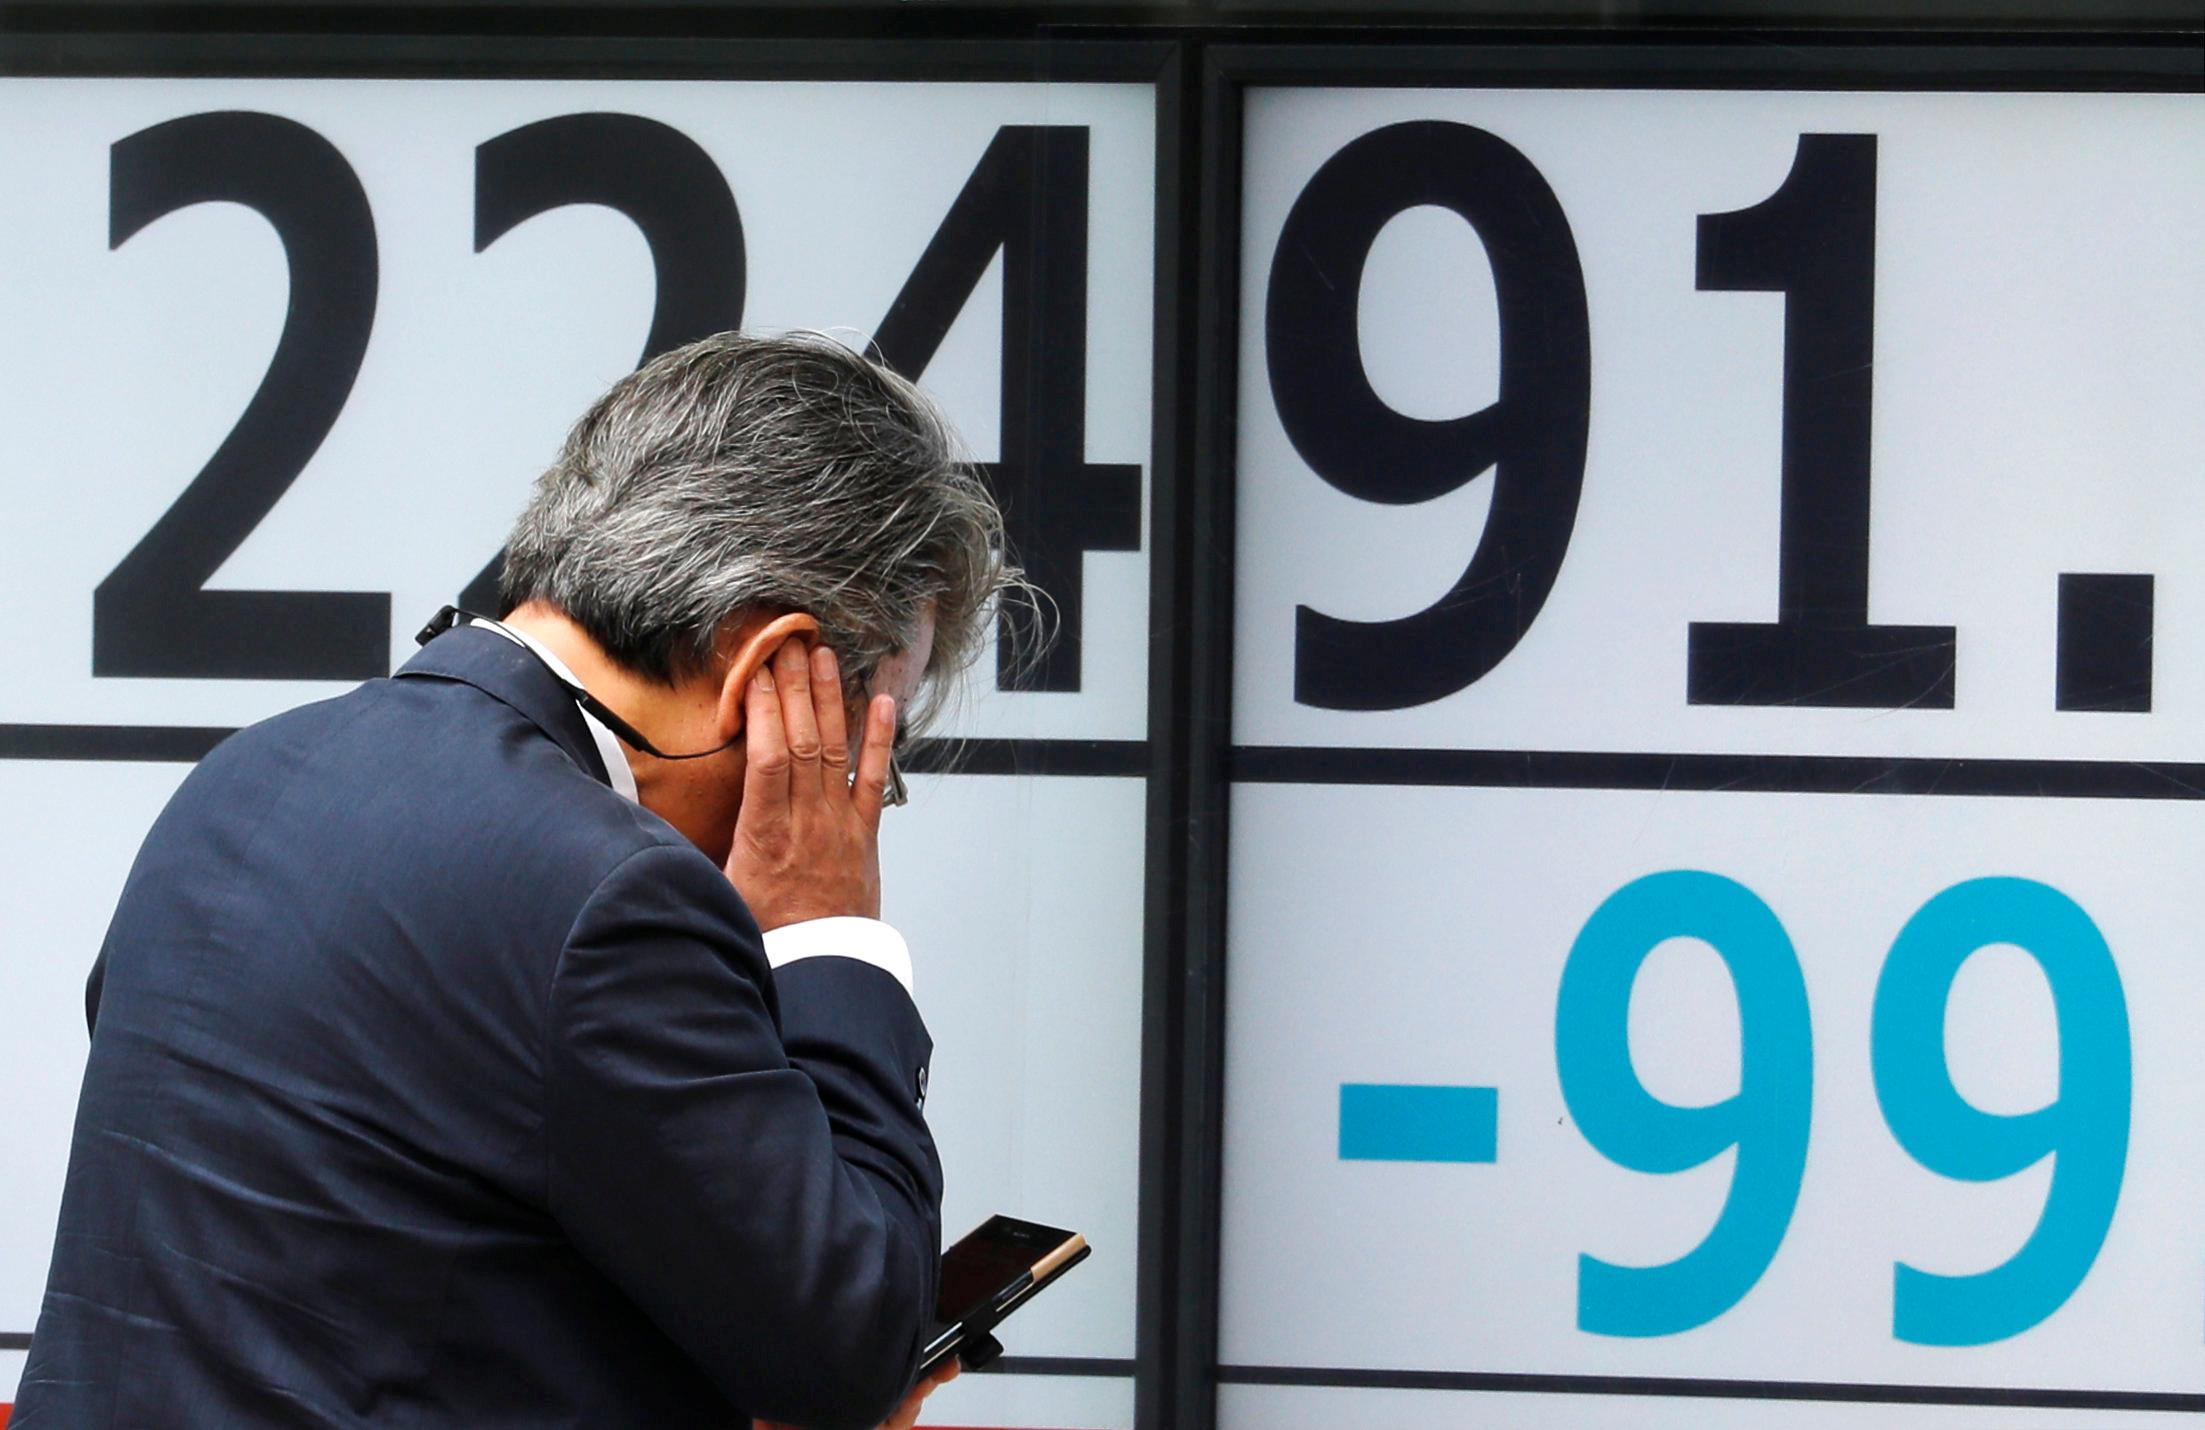 World Shares Bounce after Rout, set for Worst week since February